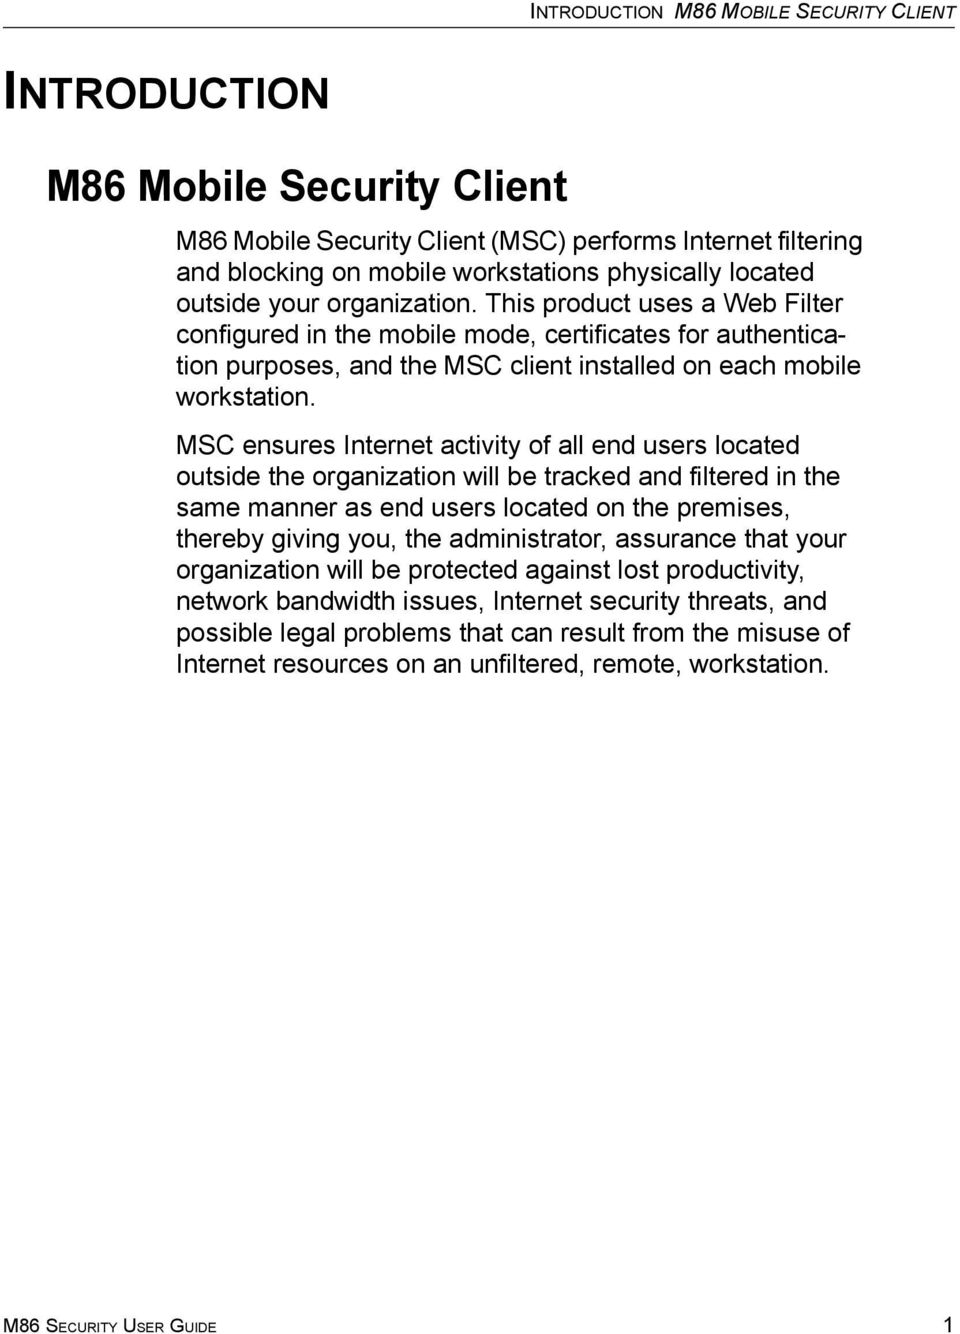 MSC ensures Internet activity of all end users located outside the organization will be tracked and filtered in the same manner as end users located on the premises, thereby giving you, the